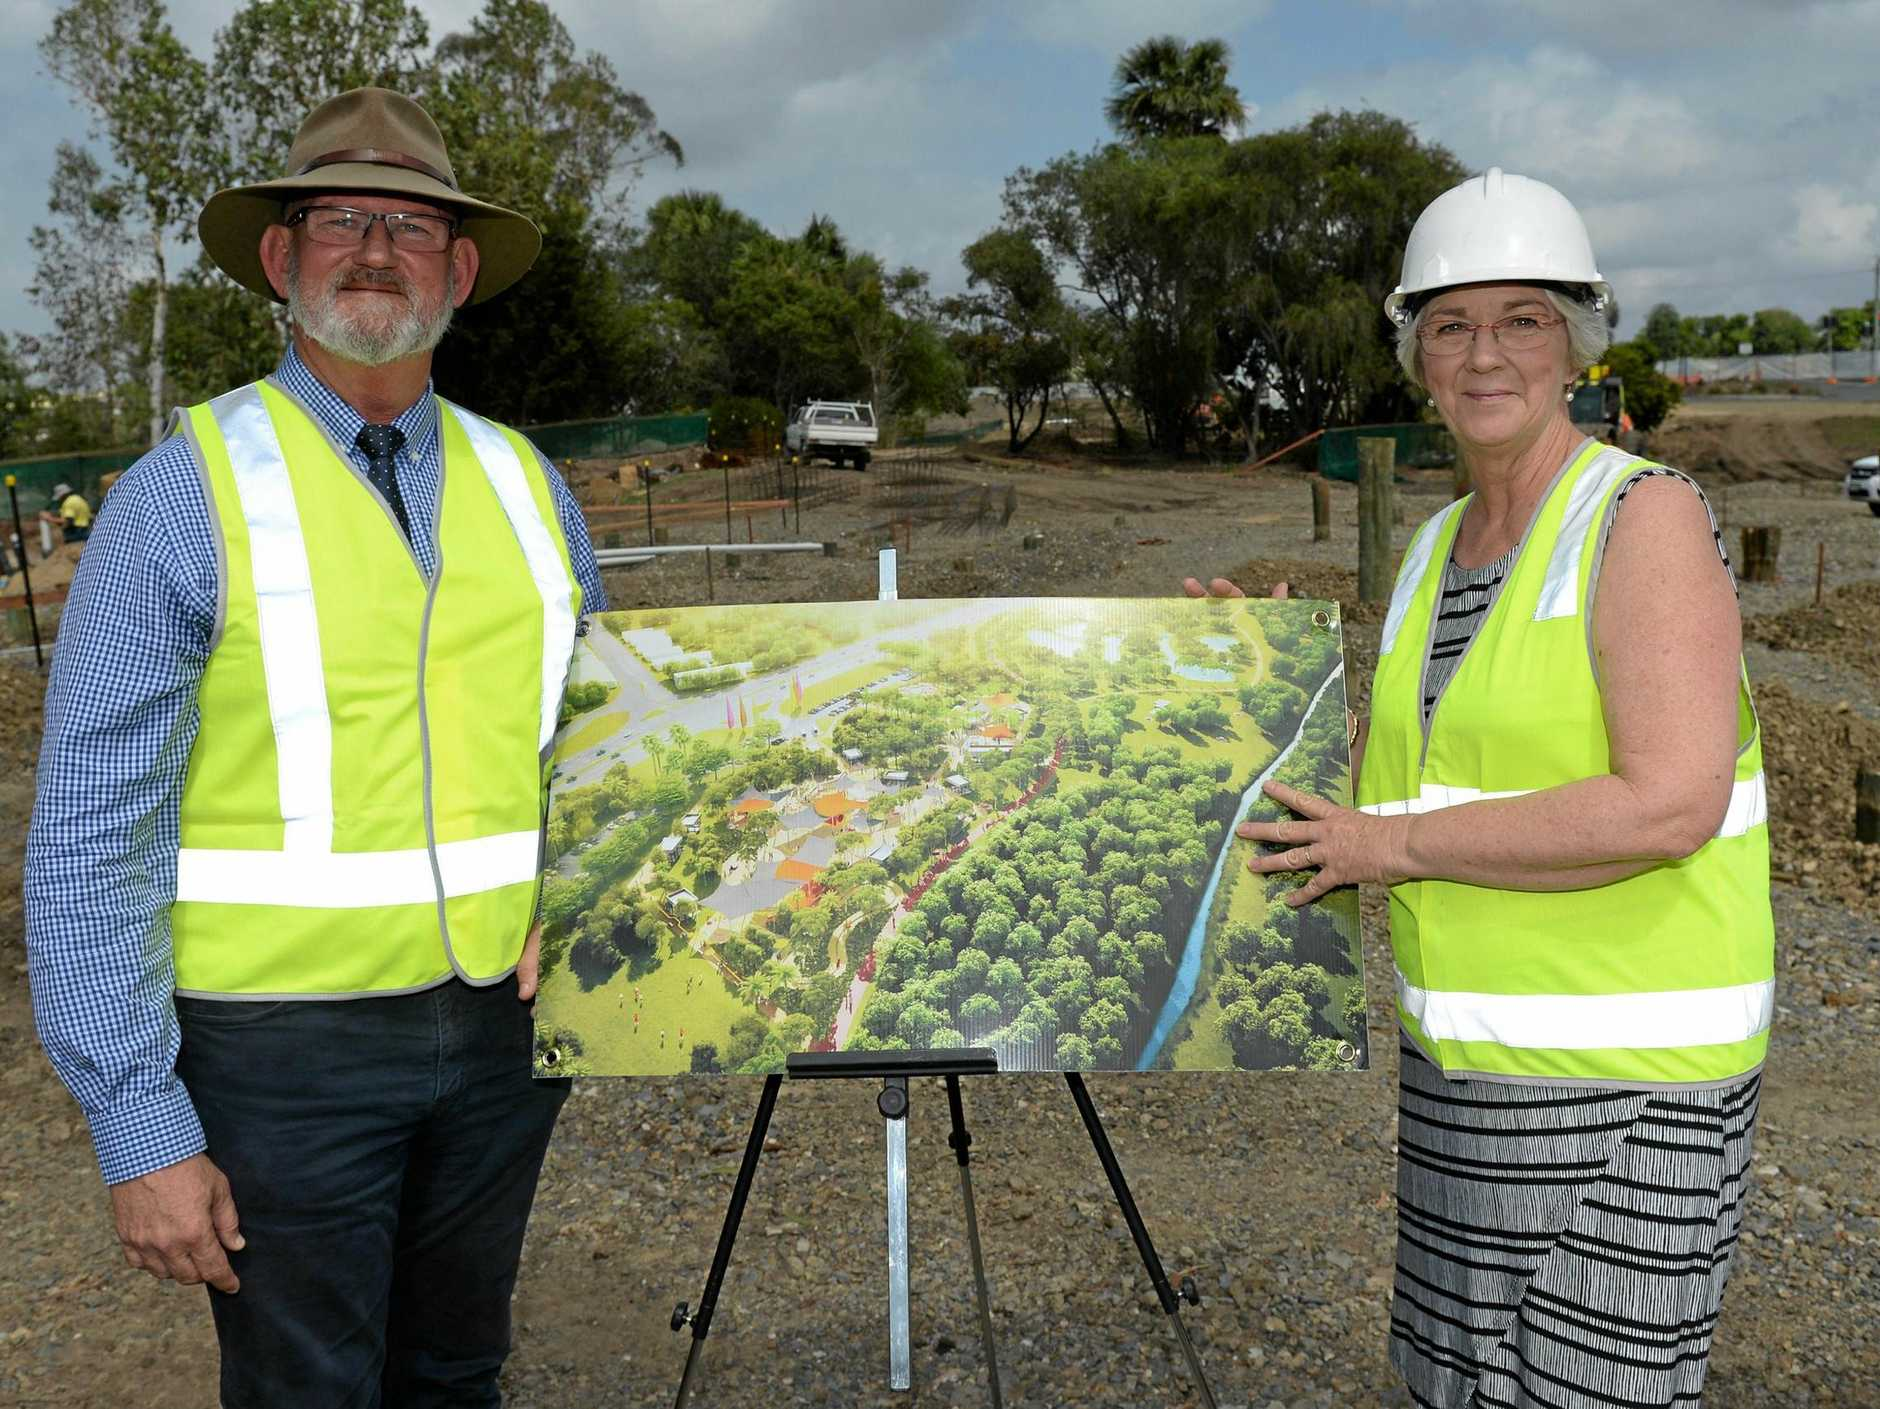 Bill Byrne (Member for Rockhampton) and Margaret Strelow (Mayor) at Kershaw Gardens just hours before he made the decision to step away from politics.